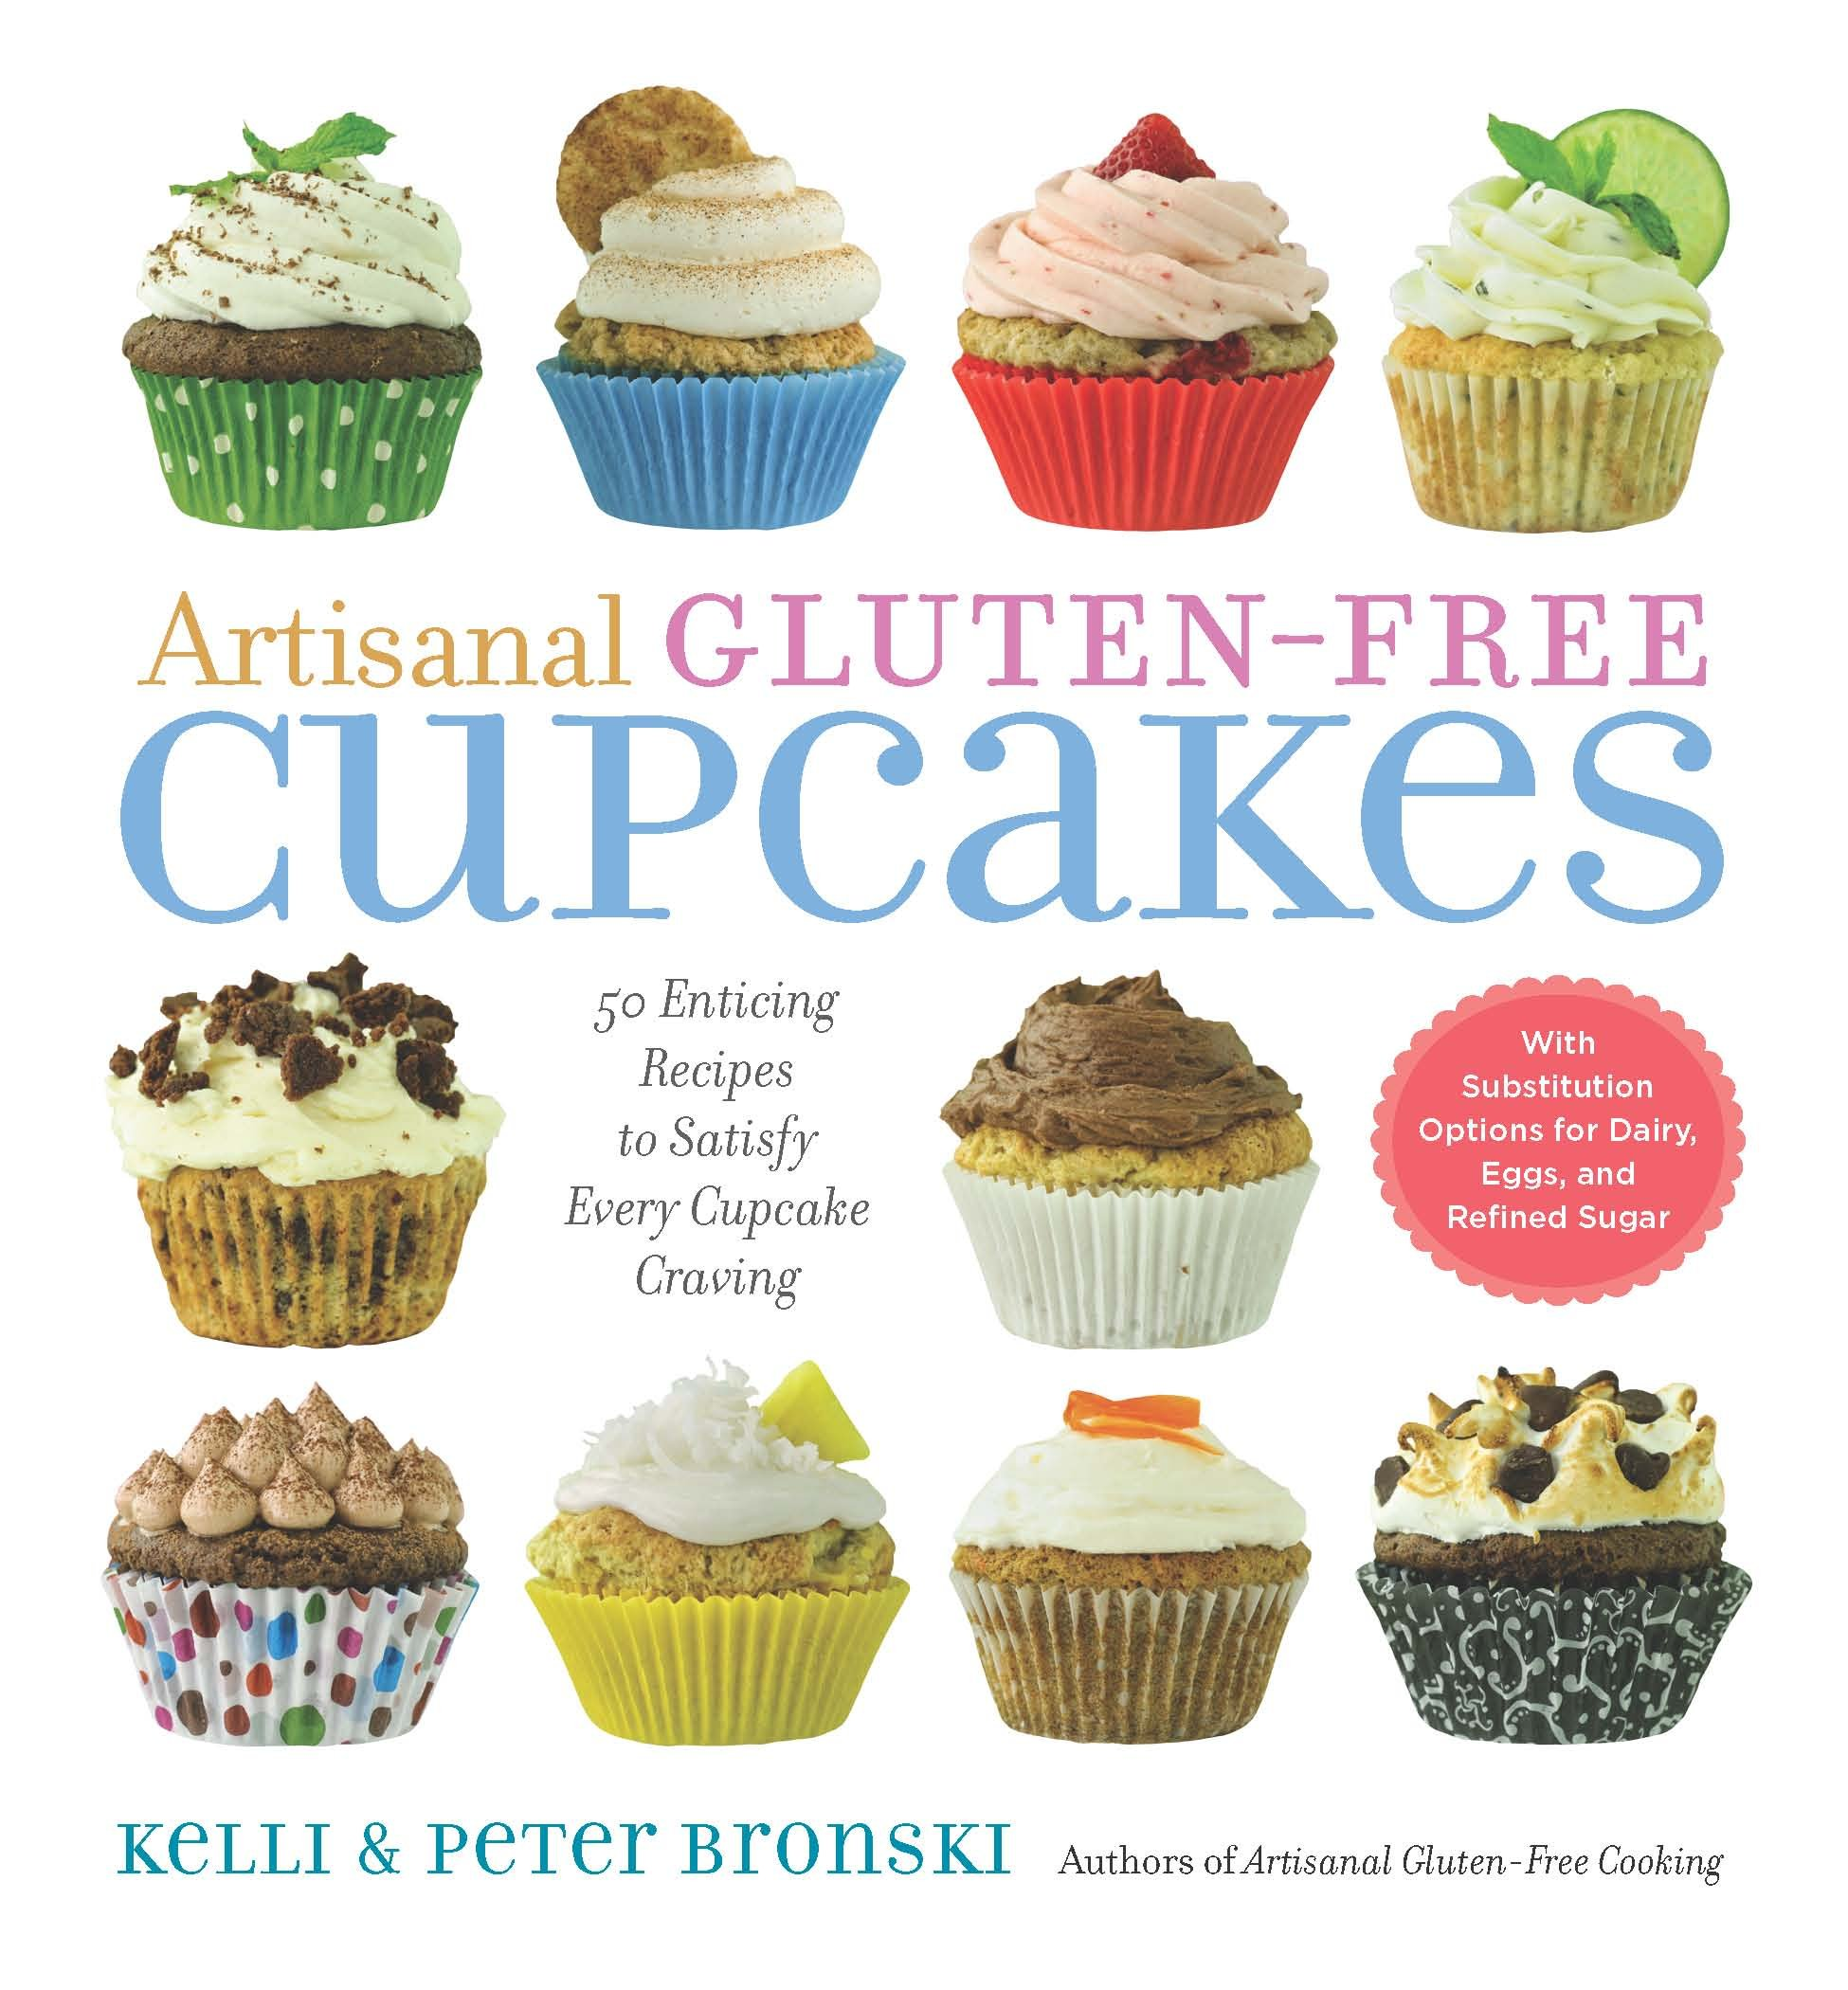 Artisanal Gluten-Free Cupcakes by The Experiment